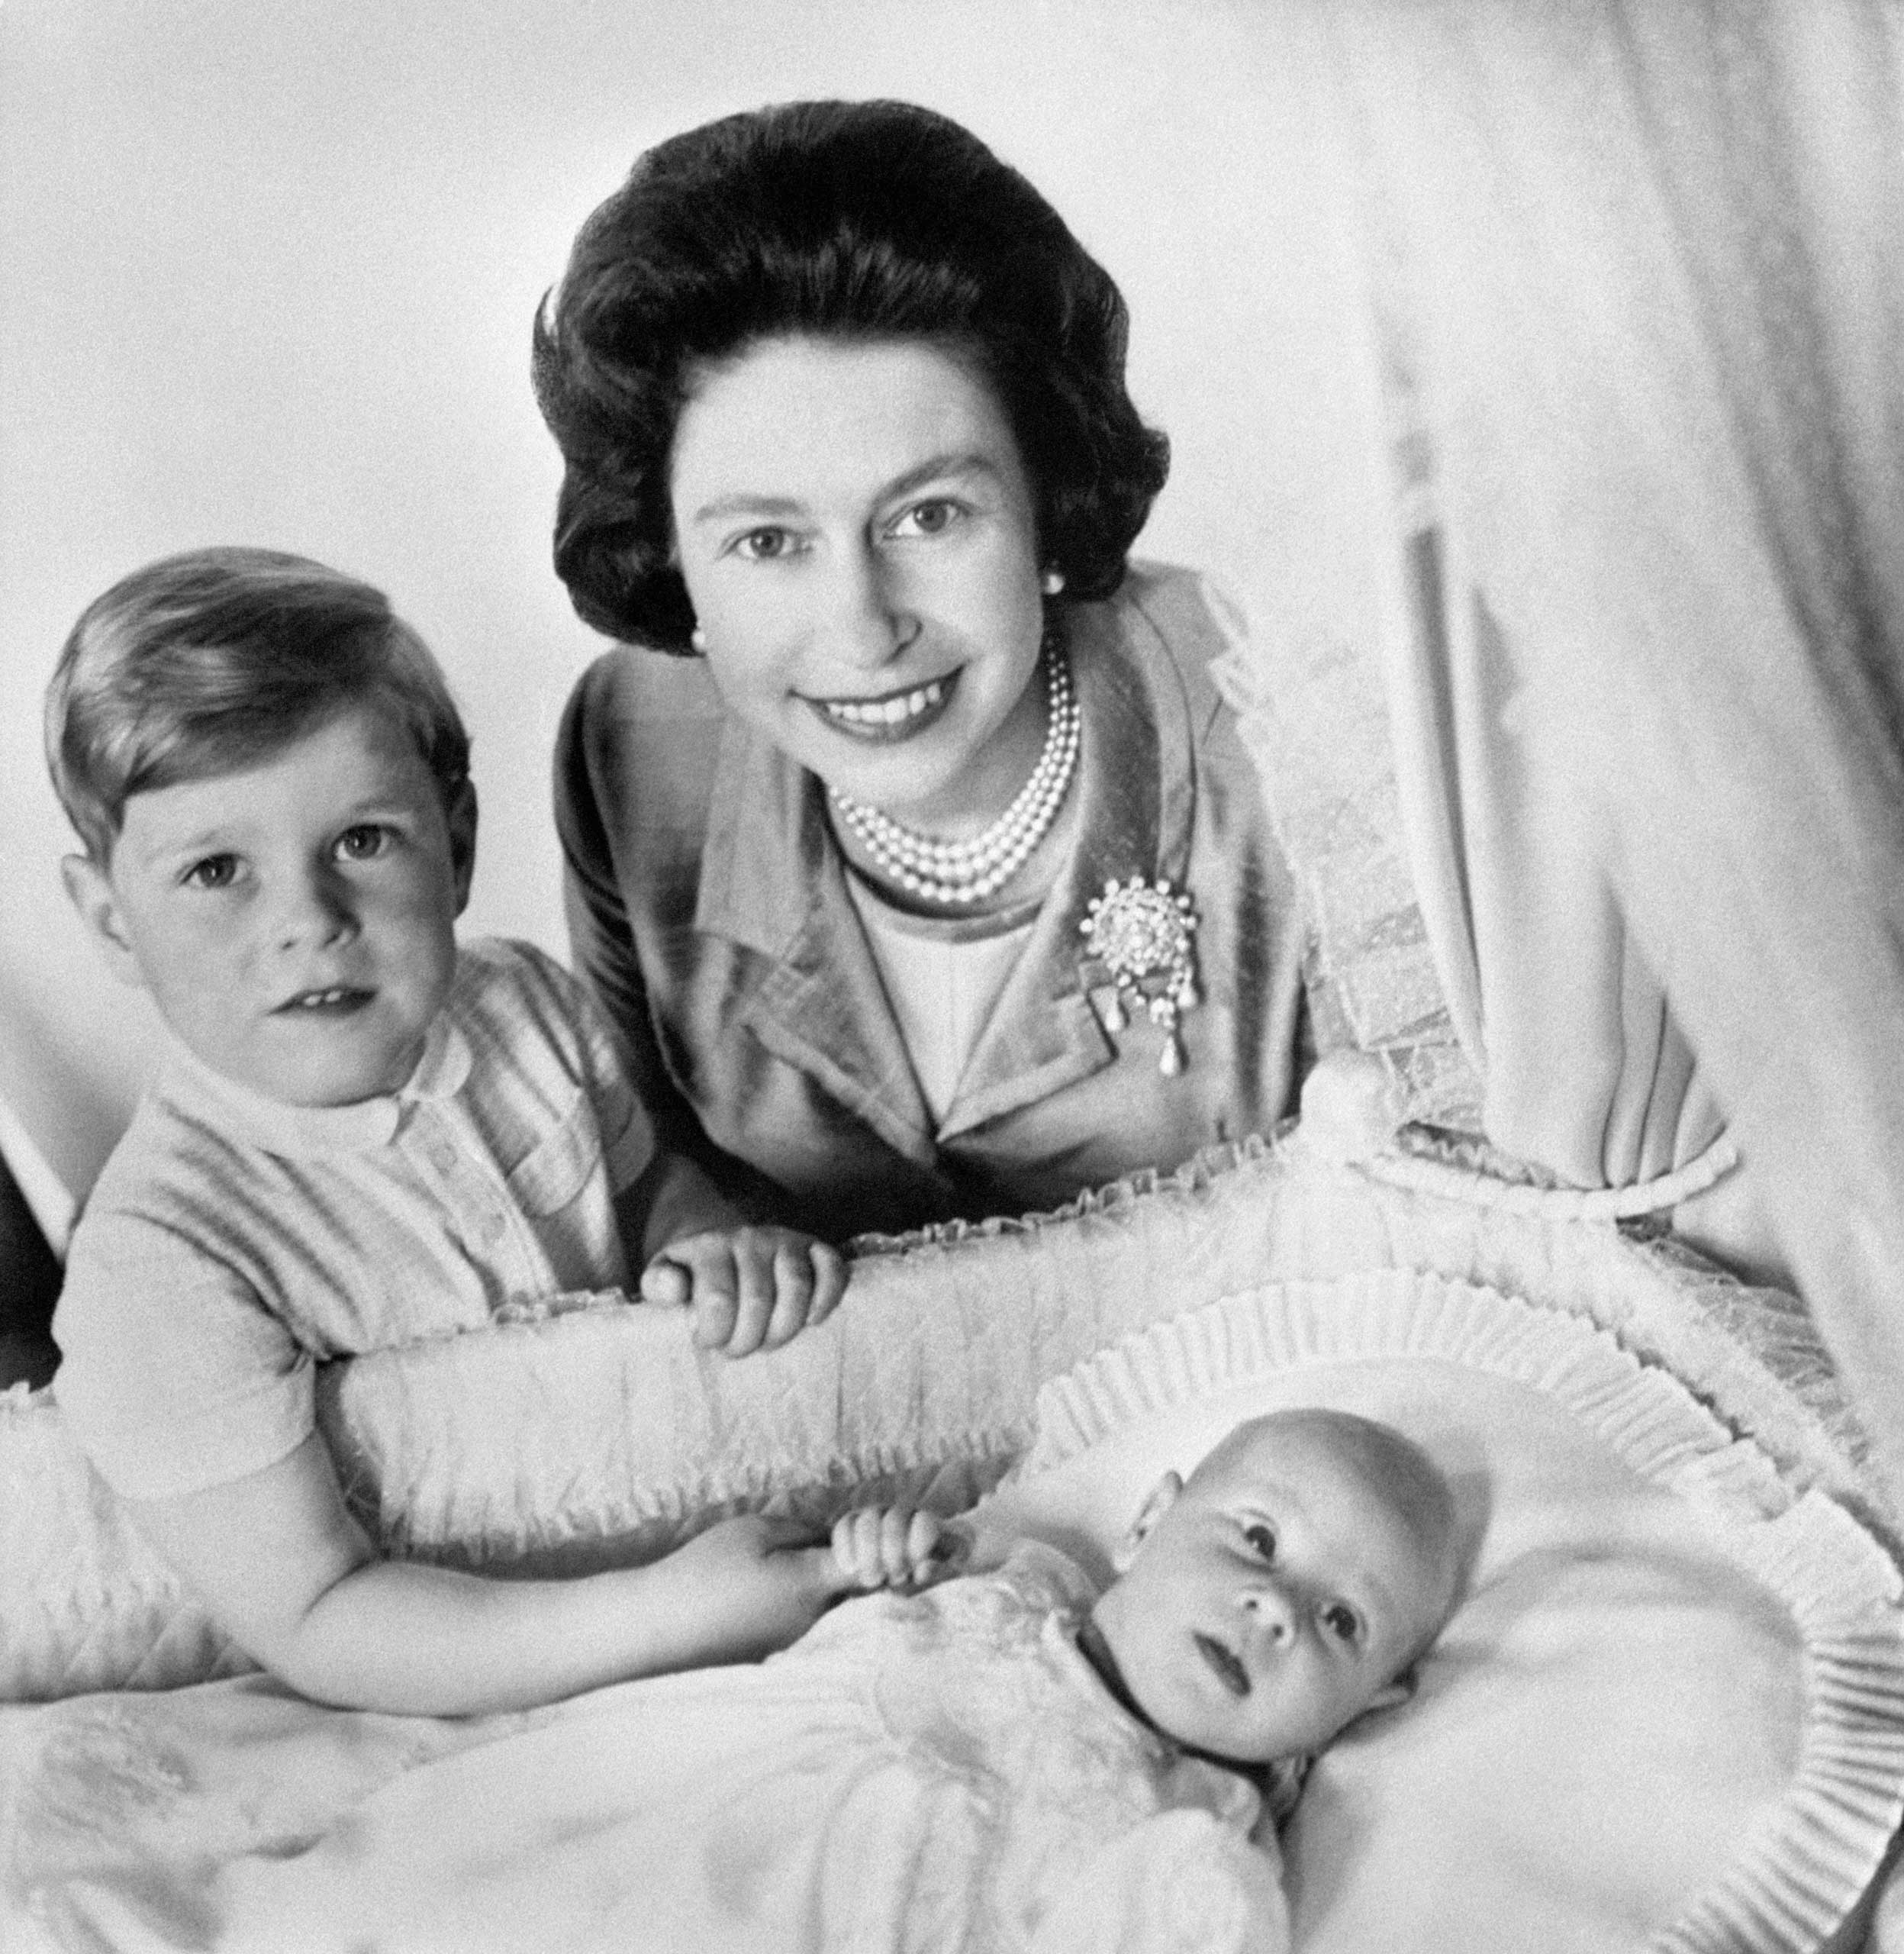 This 1964 snap of Prince Edward in his cot, with brother Andrew and his mother, the Queen, already suggests an interest in what's going on behind the camera. He went on to found a TV production company in 1993.